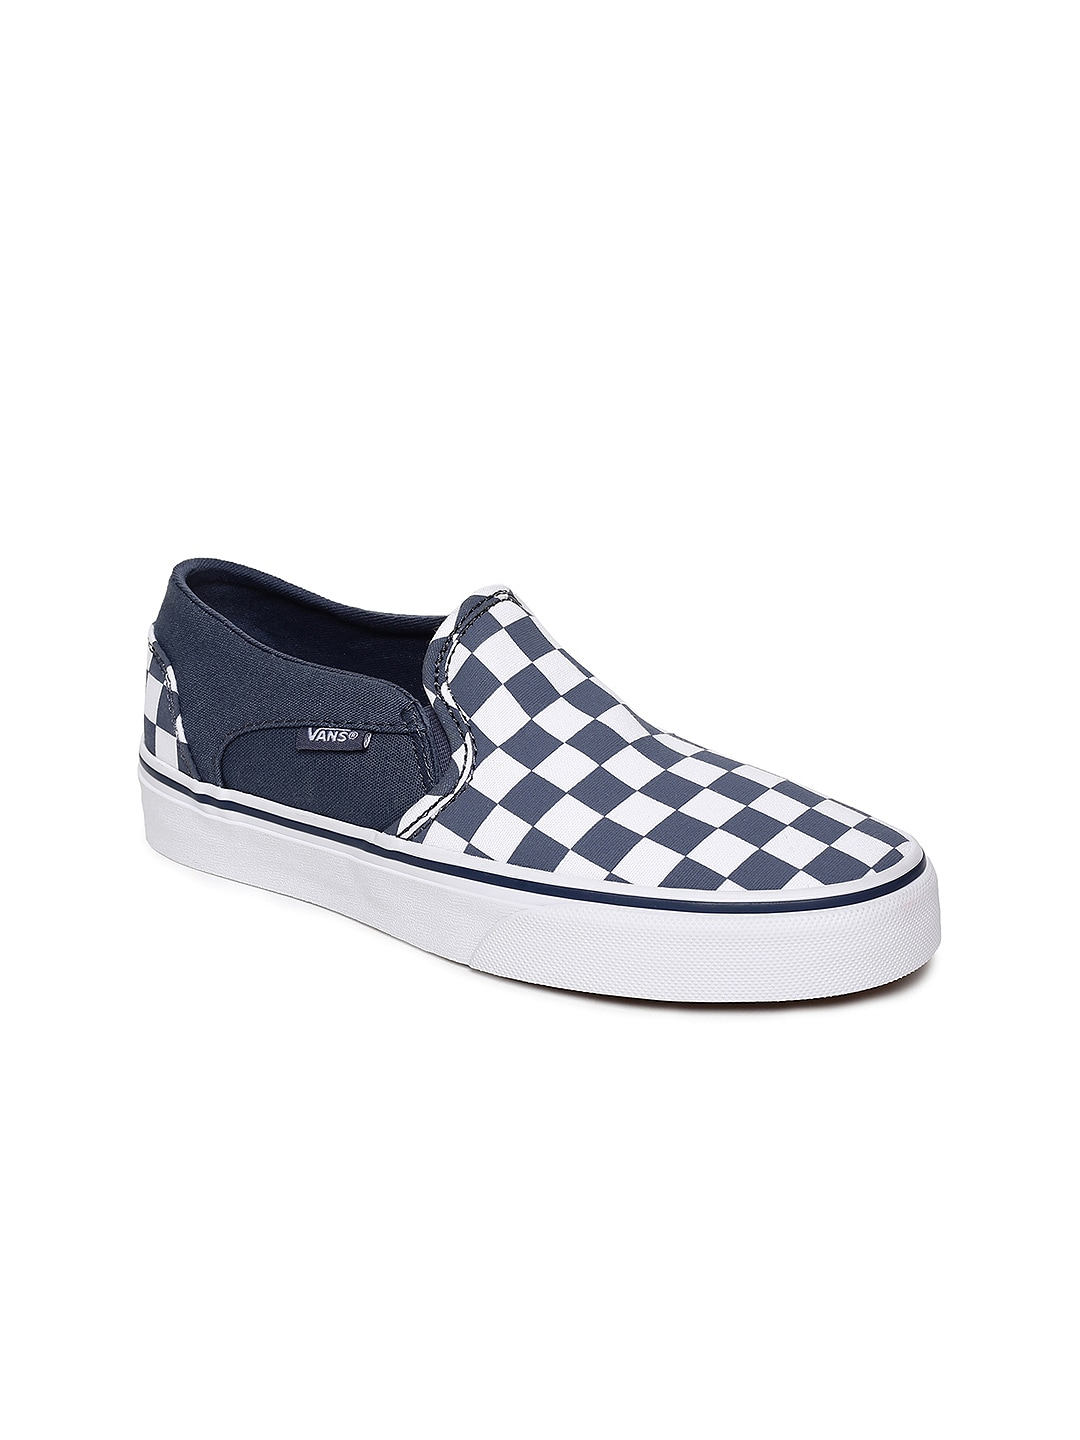 25634331aa Vans Shoes for Women - Buy Vans Shoes for Girls Online - Myntra